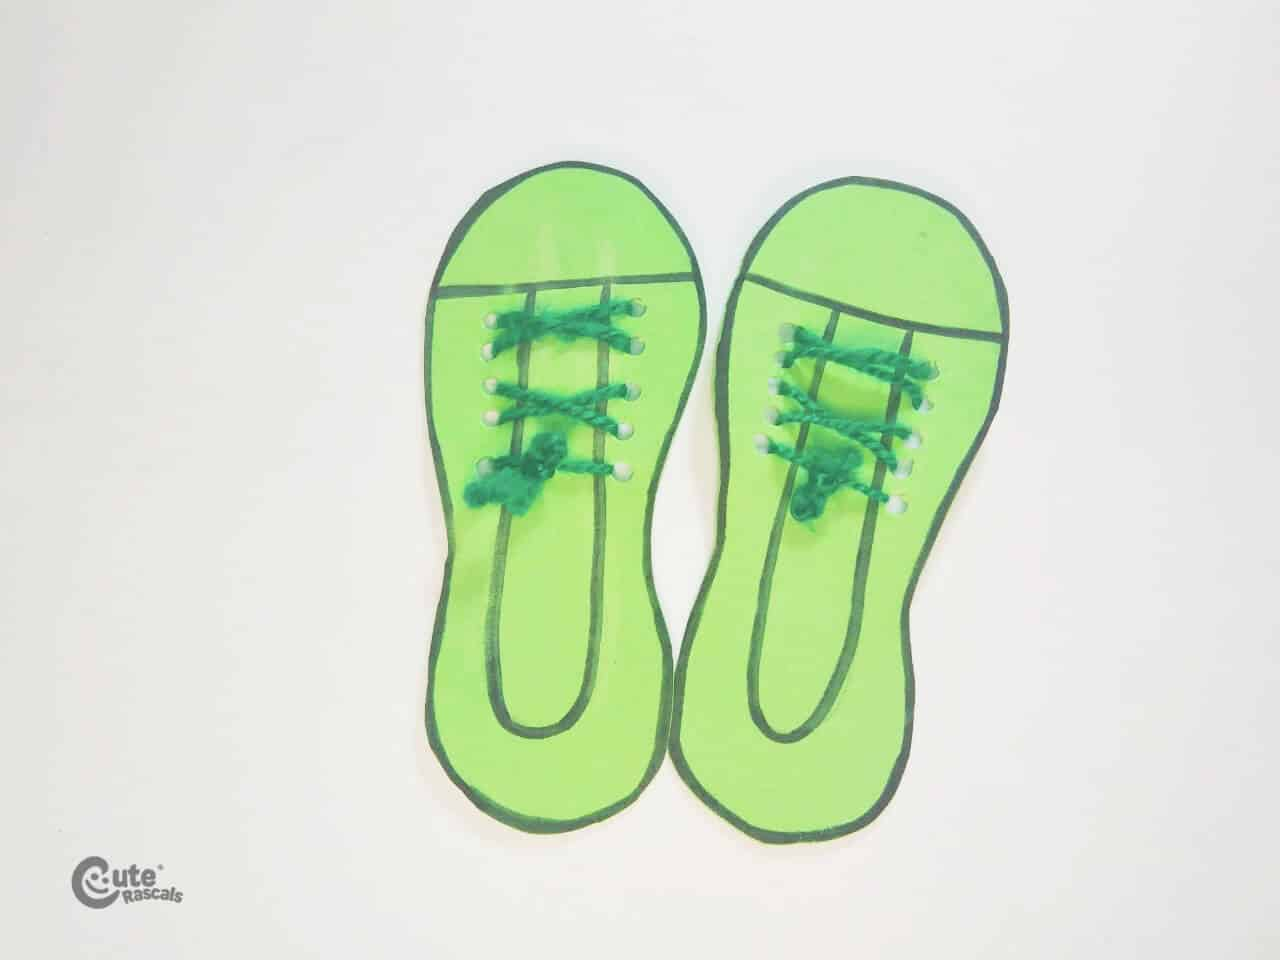 Grinch's shoes tied with yarn. Christmas crafts for kids